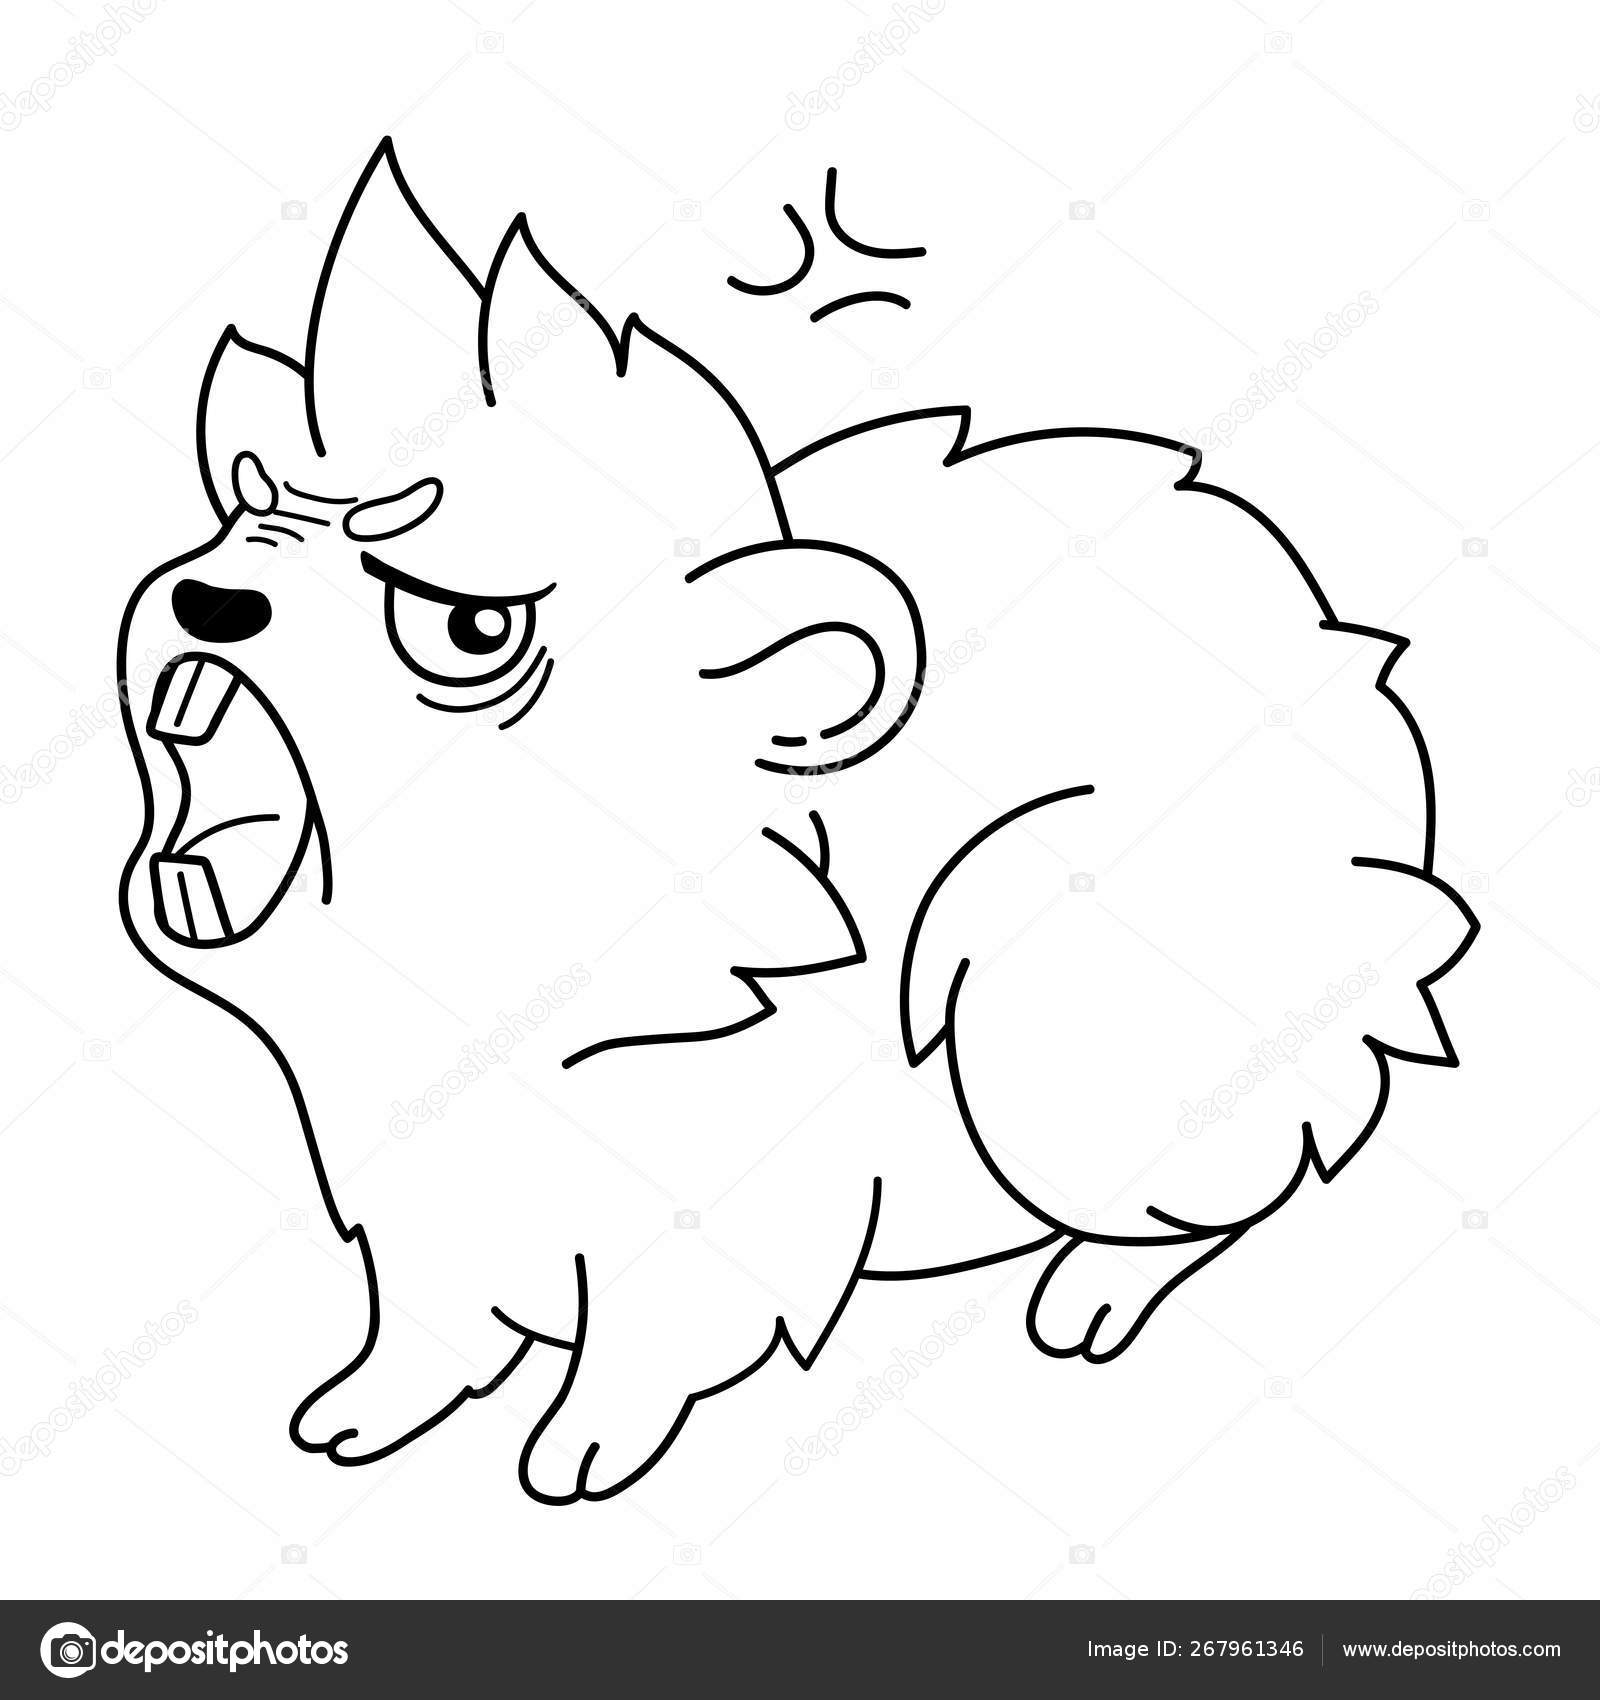 Cavy With Frowning Eyebrows Wants To Bite Emoji Rage Stock Vector C Silva 267961346